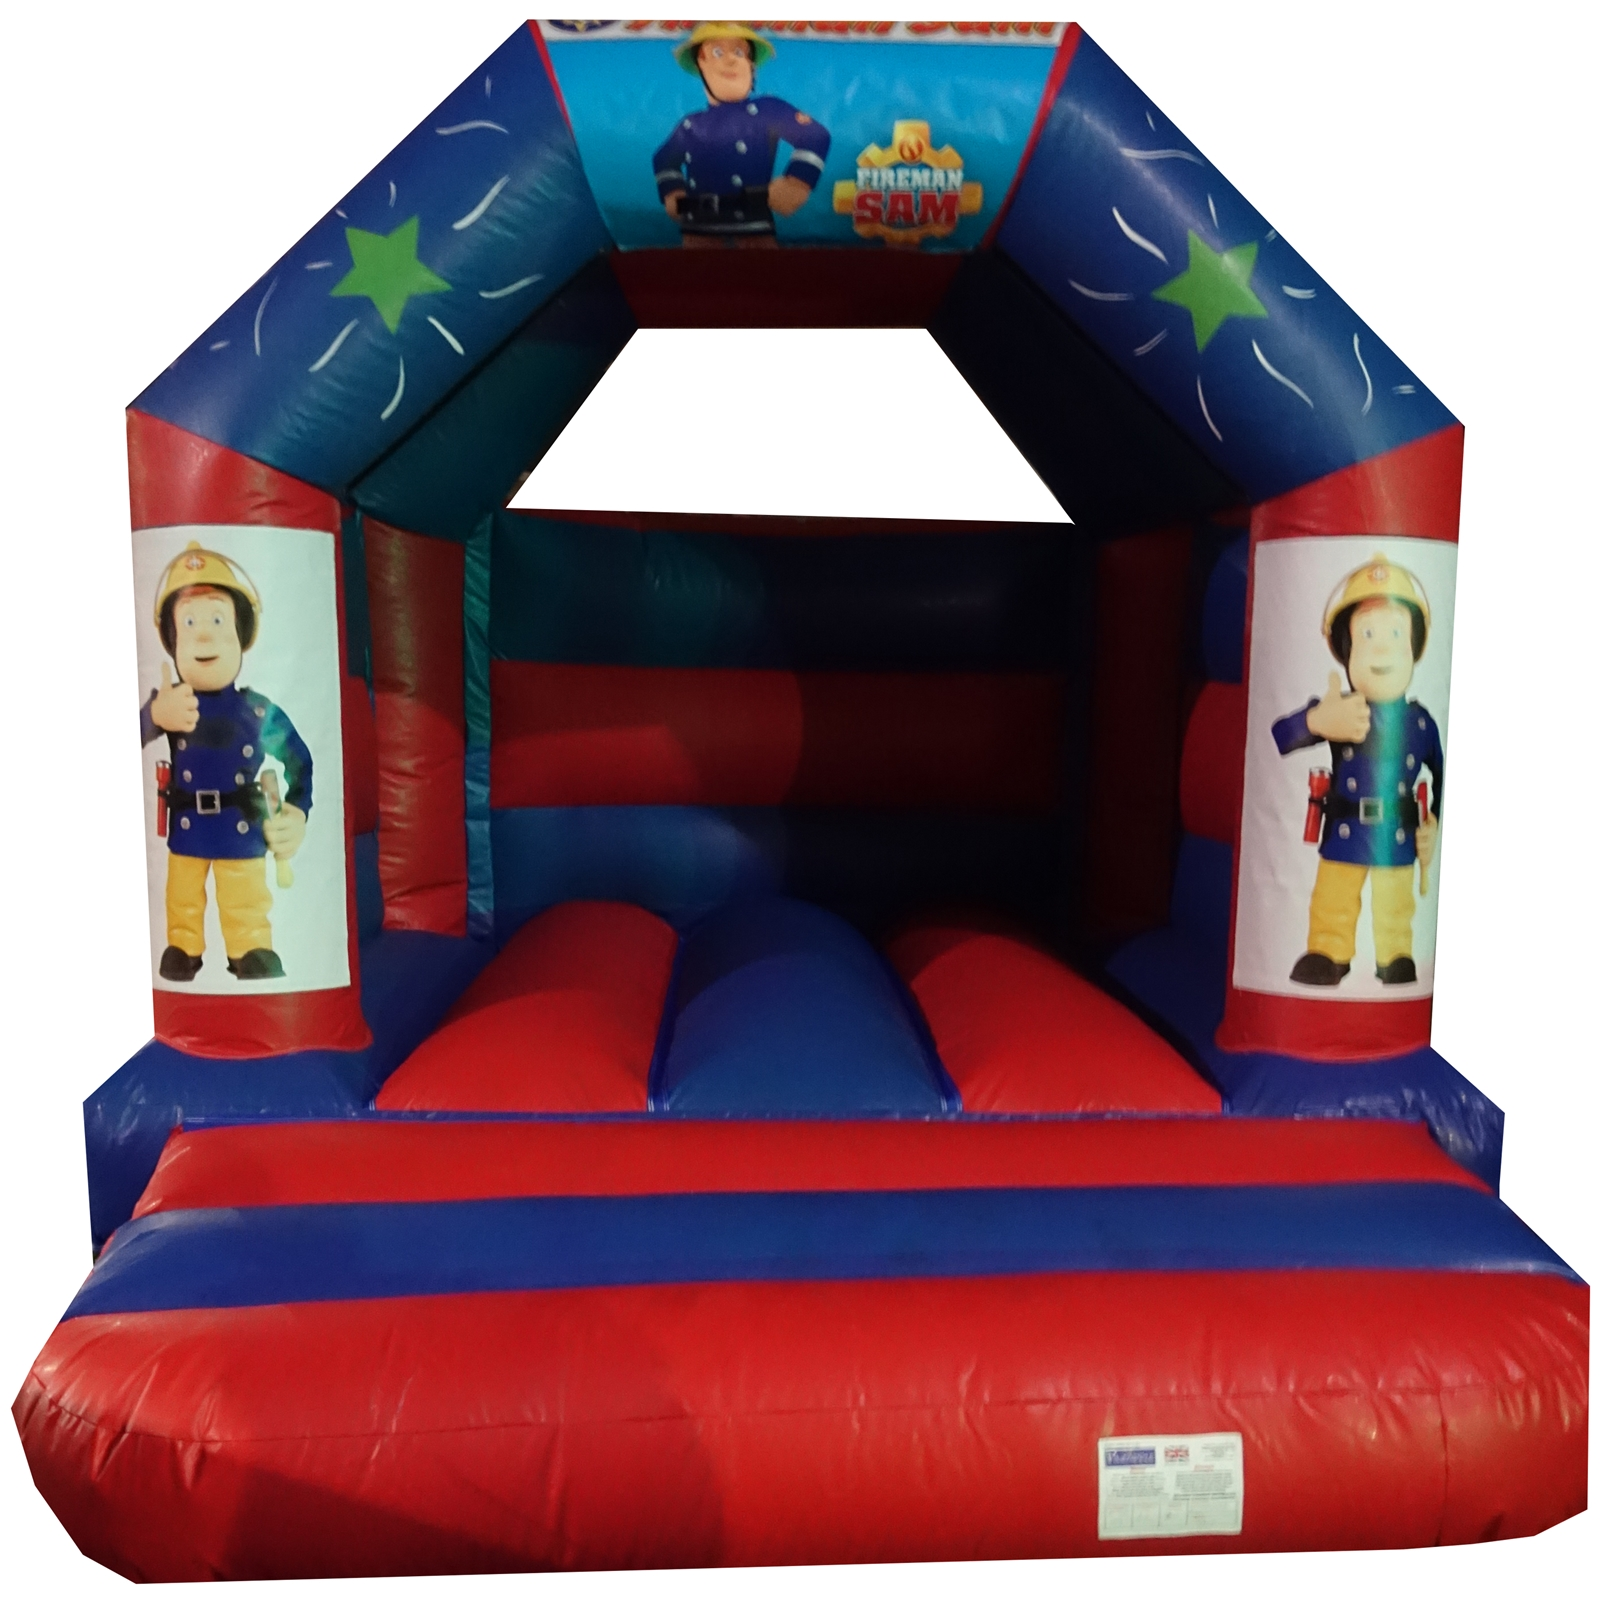 Inflatable Slide Hire Uk: Small 10x12 Bouncy Castle Hire